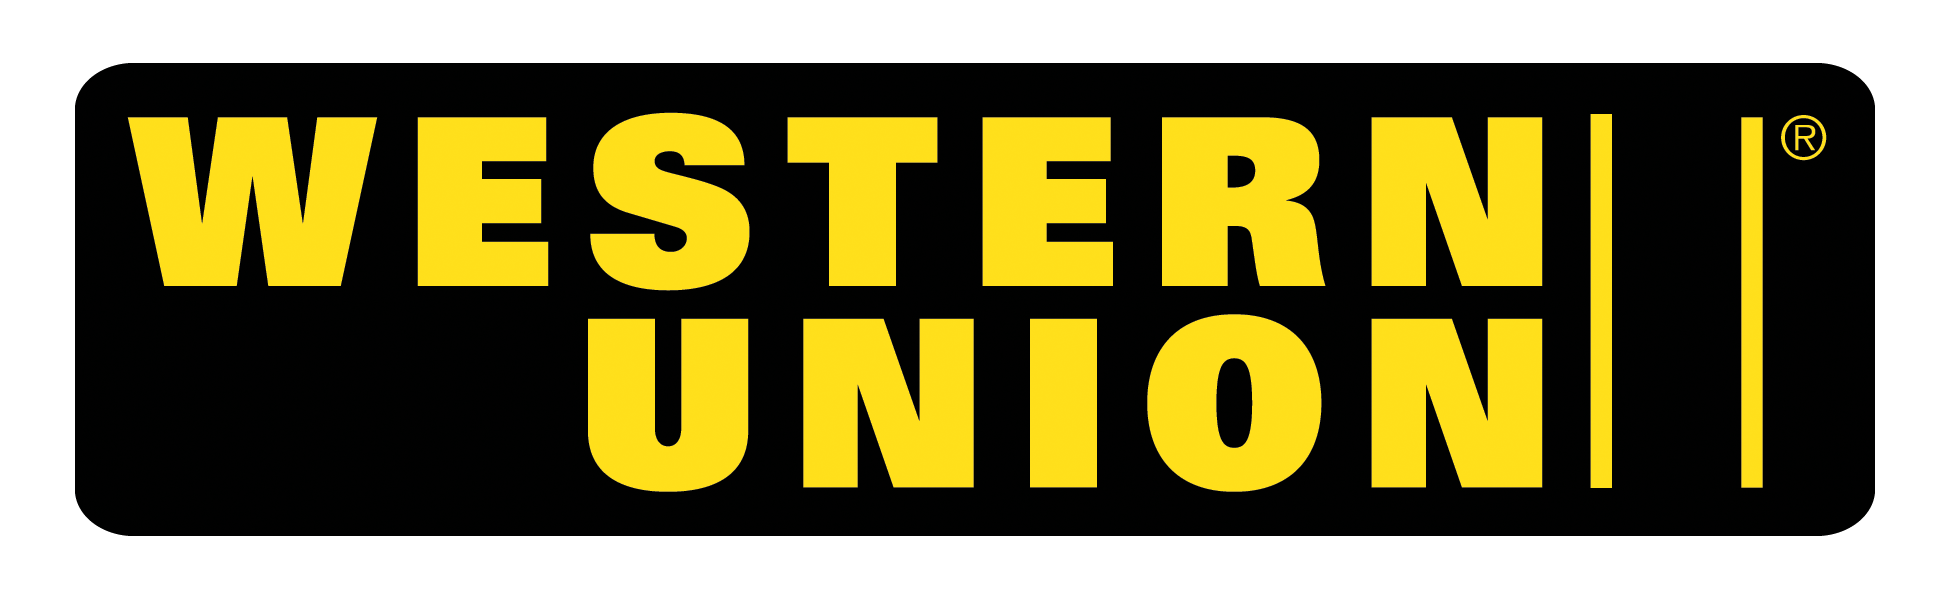 Western Union Expands Payment Suite with Western Unionr Small Business  Payments Targeting Small to Medium-Sized Business